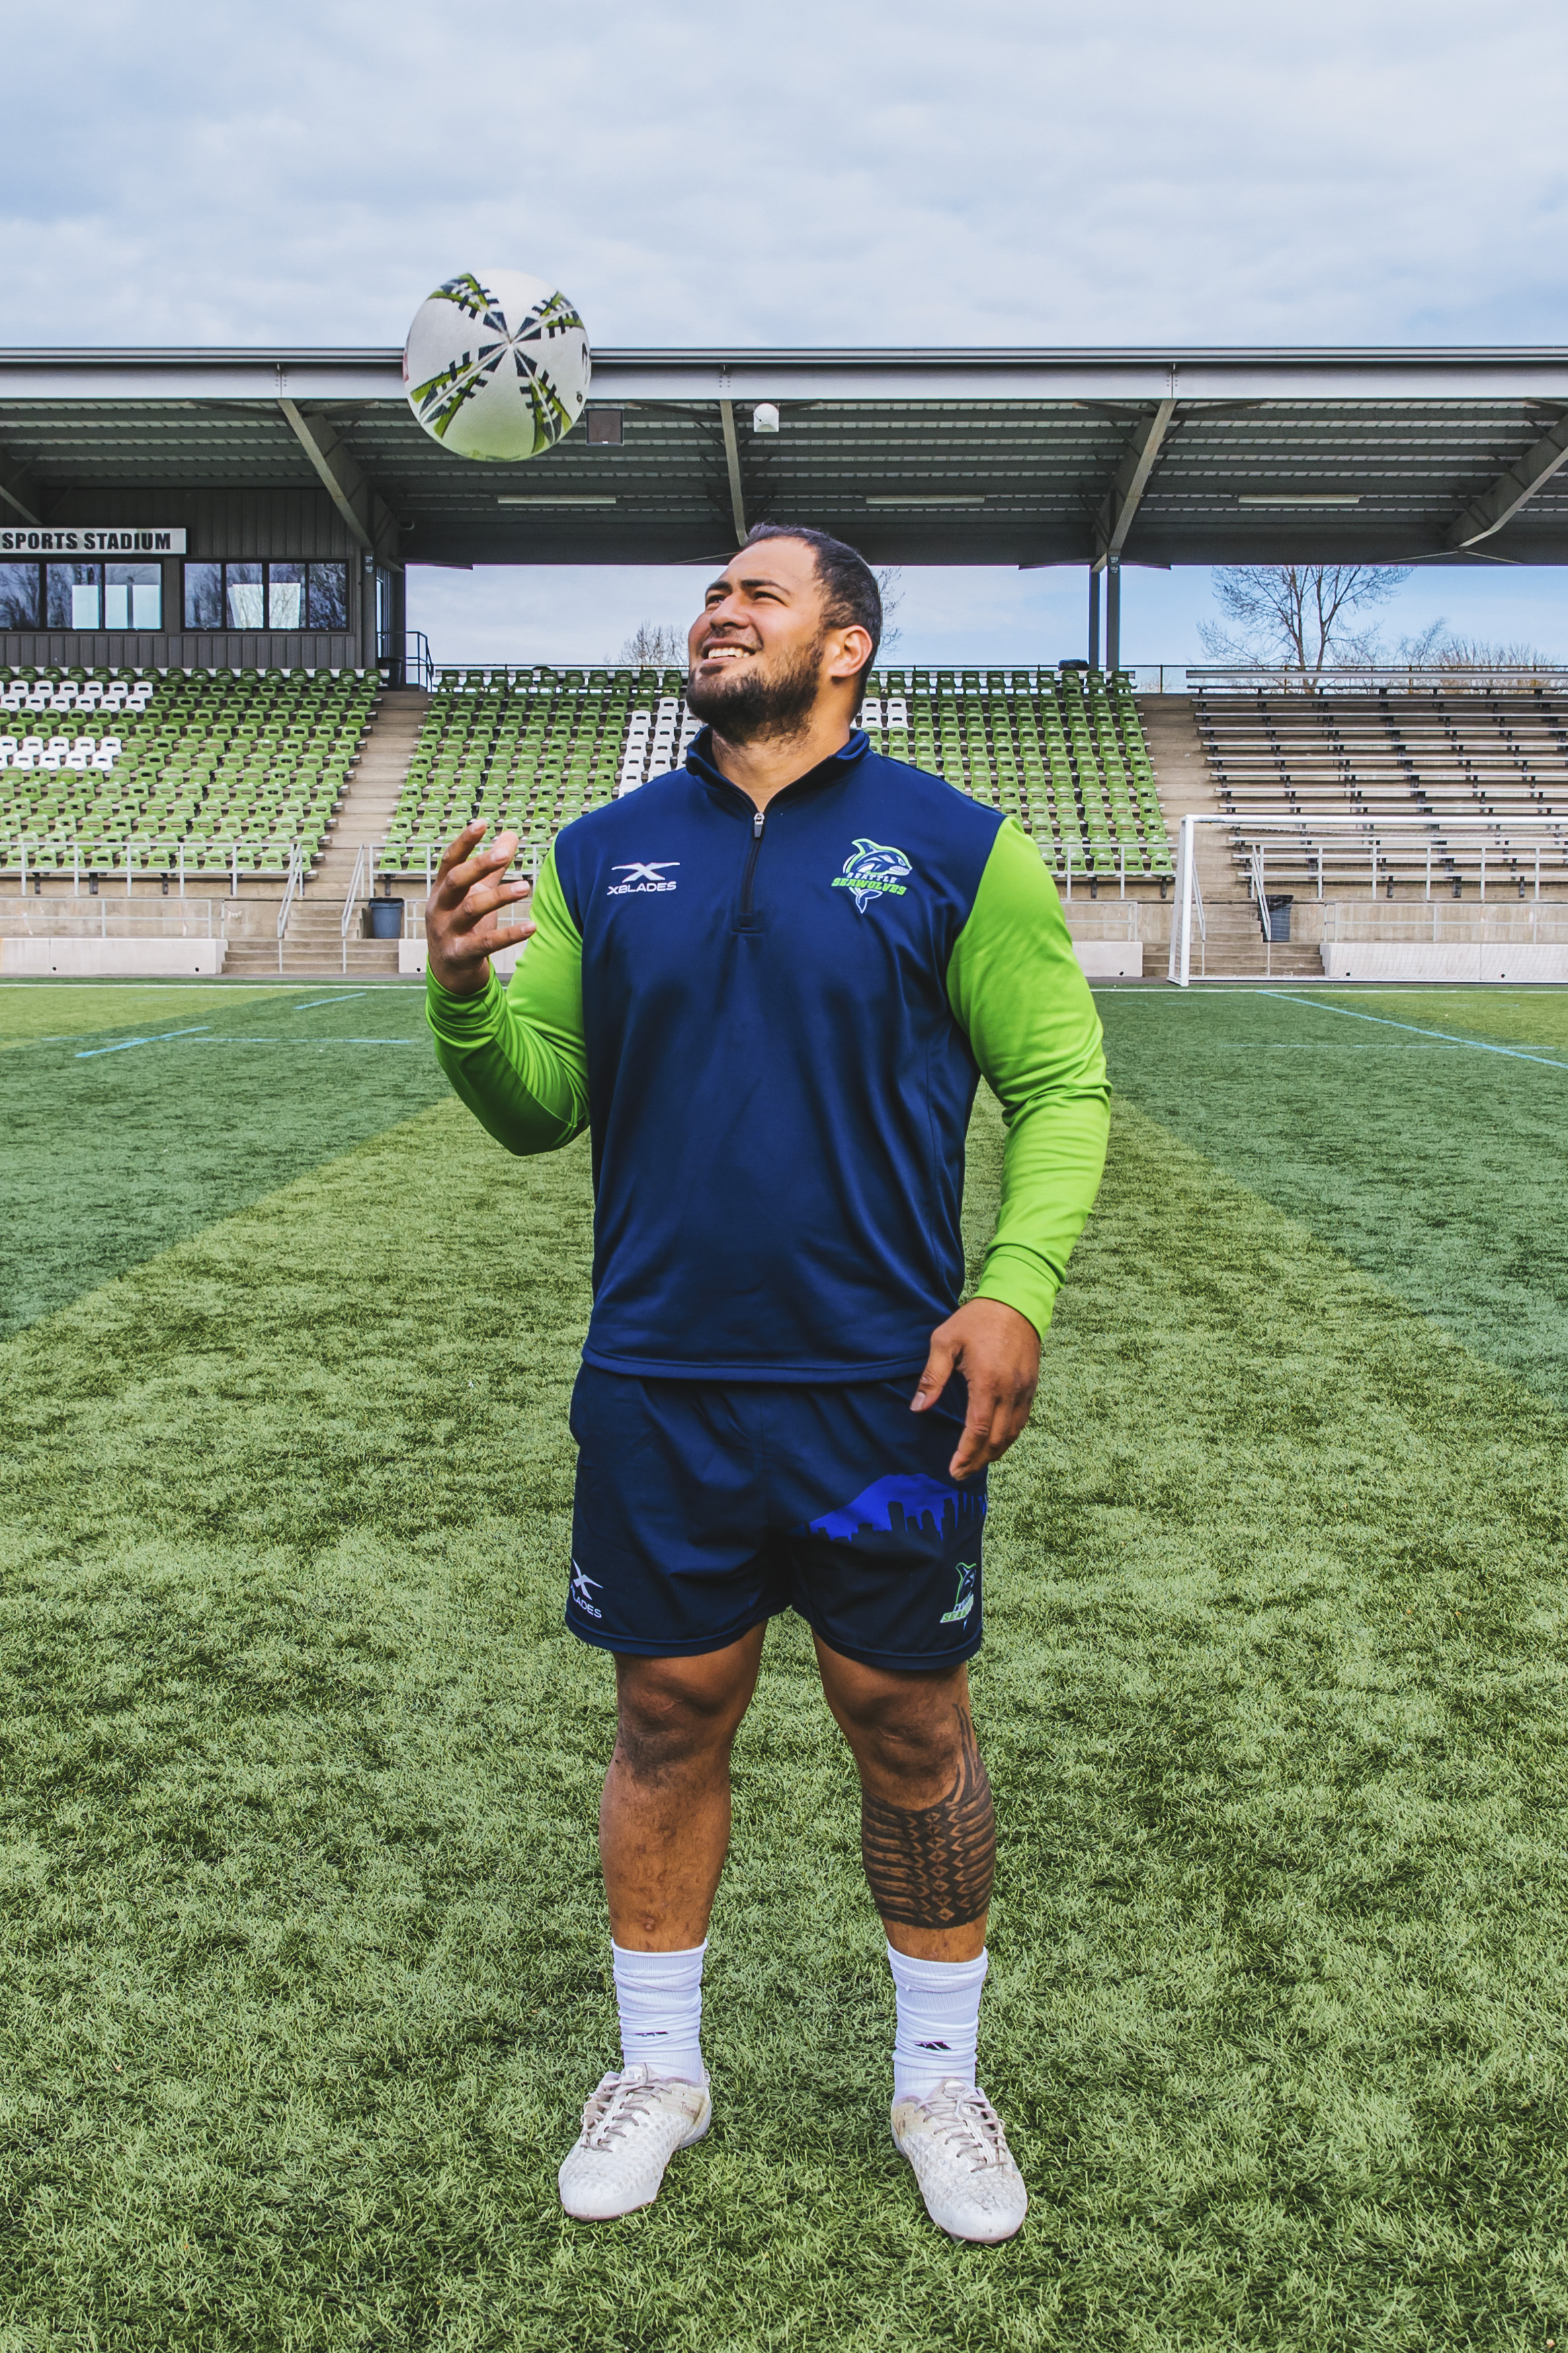 Joey was born in Laulii, American Somoa but the 27-year-old has made his way to the PNW to play on the Seattle Seawolves! He plays Inside Center and his favorite TV show currently is Game of Thrones. (Image: Sunita Martini / Seattle Refined).